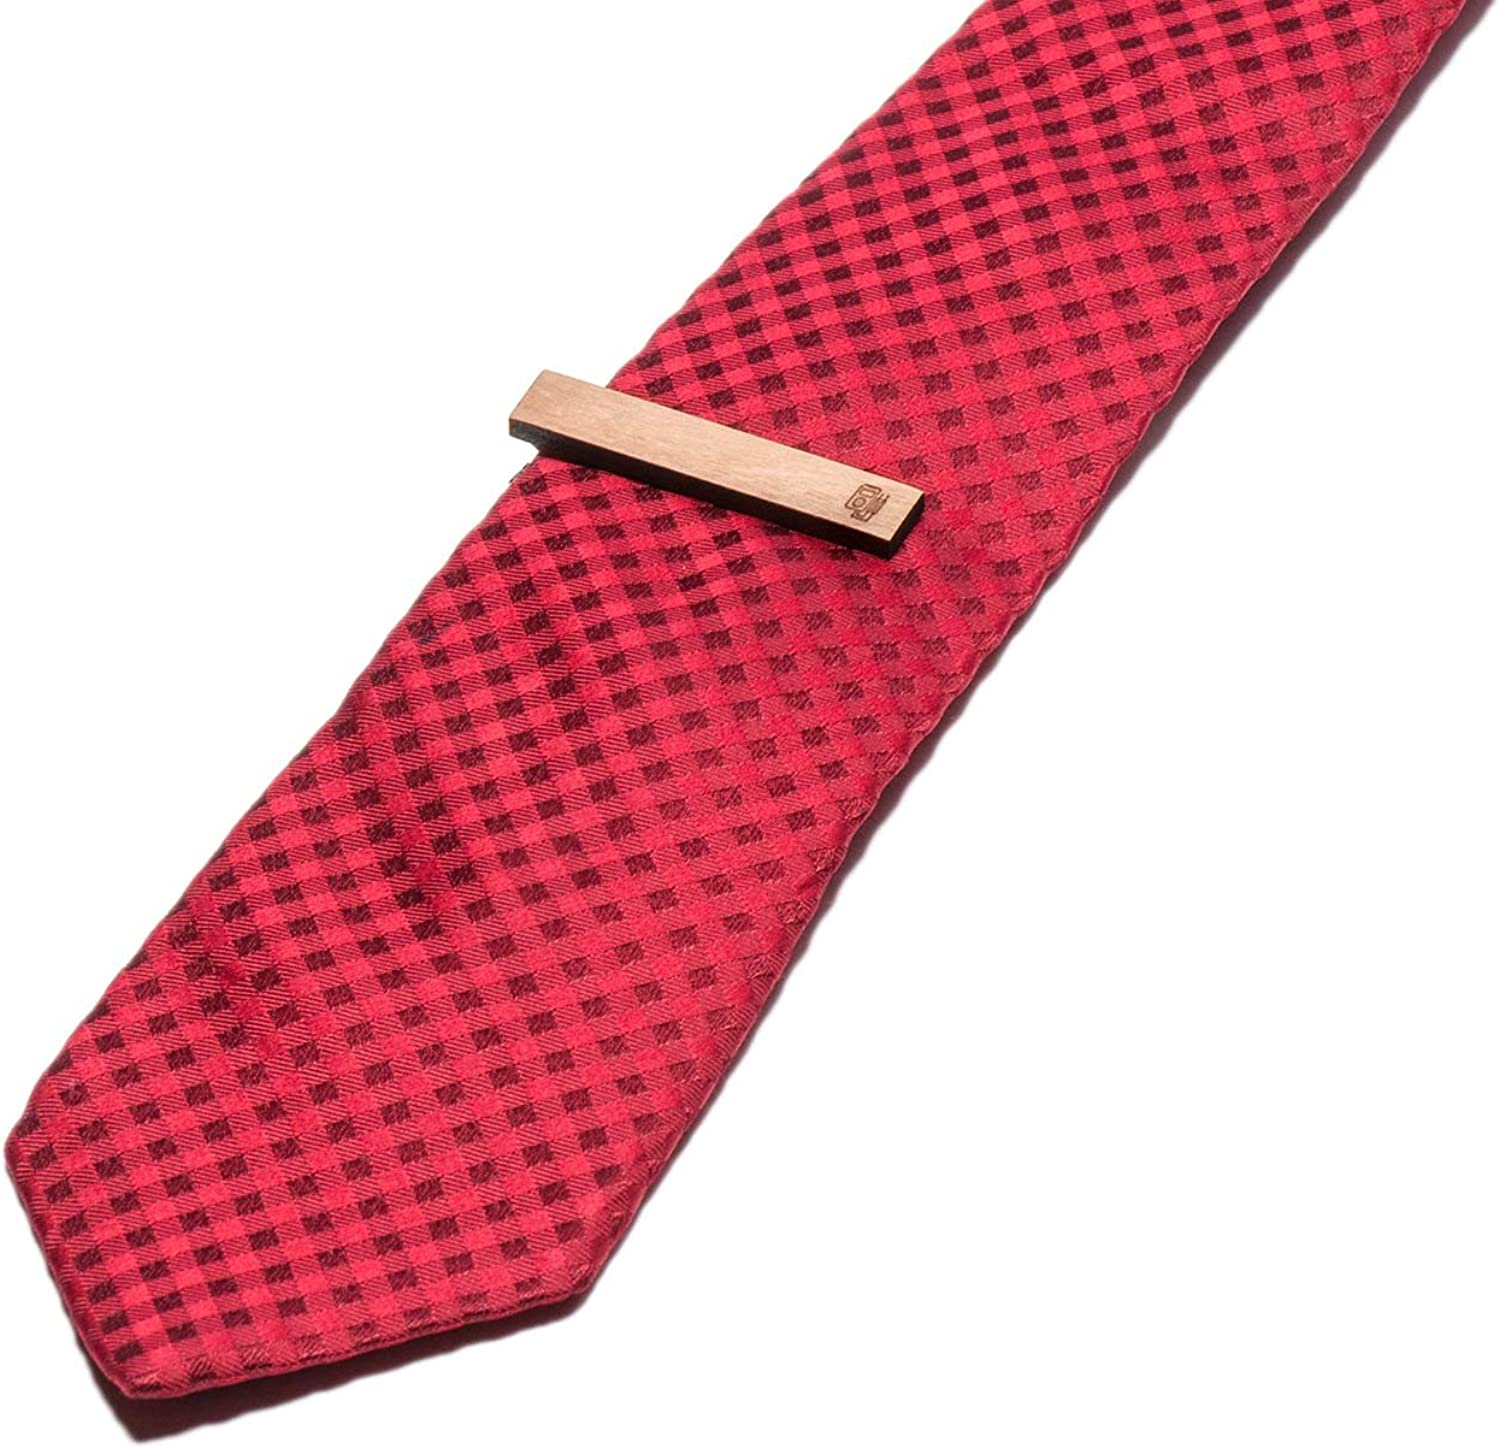 Wooden Accessories Company Wooden Tie Clips with Laser Engraved Multimeter Design Cherry Wood Tie Bar Engraved in The USA